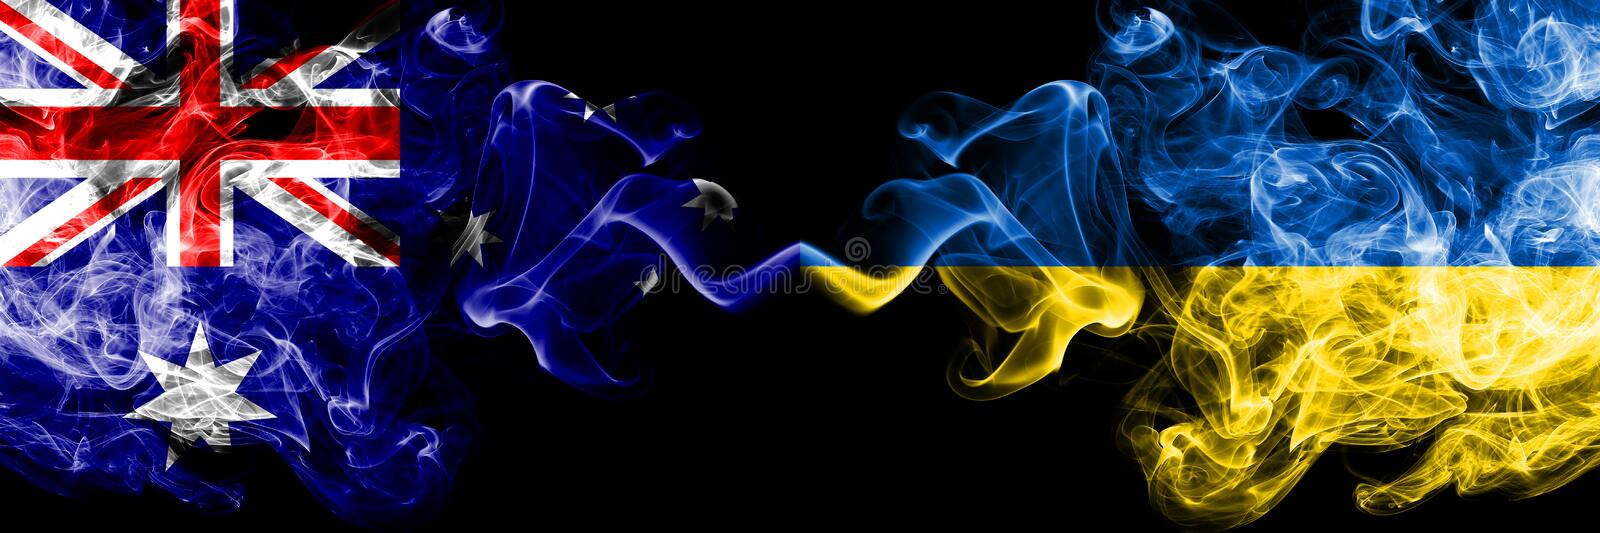 Australia vs Ukraine, Ukrainian smoky mystic flags placed side by side. Thick colored silky smokes combination of national flags. Of Australia and Ukraine vector illustration